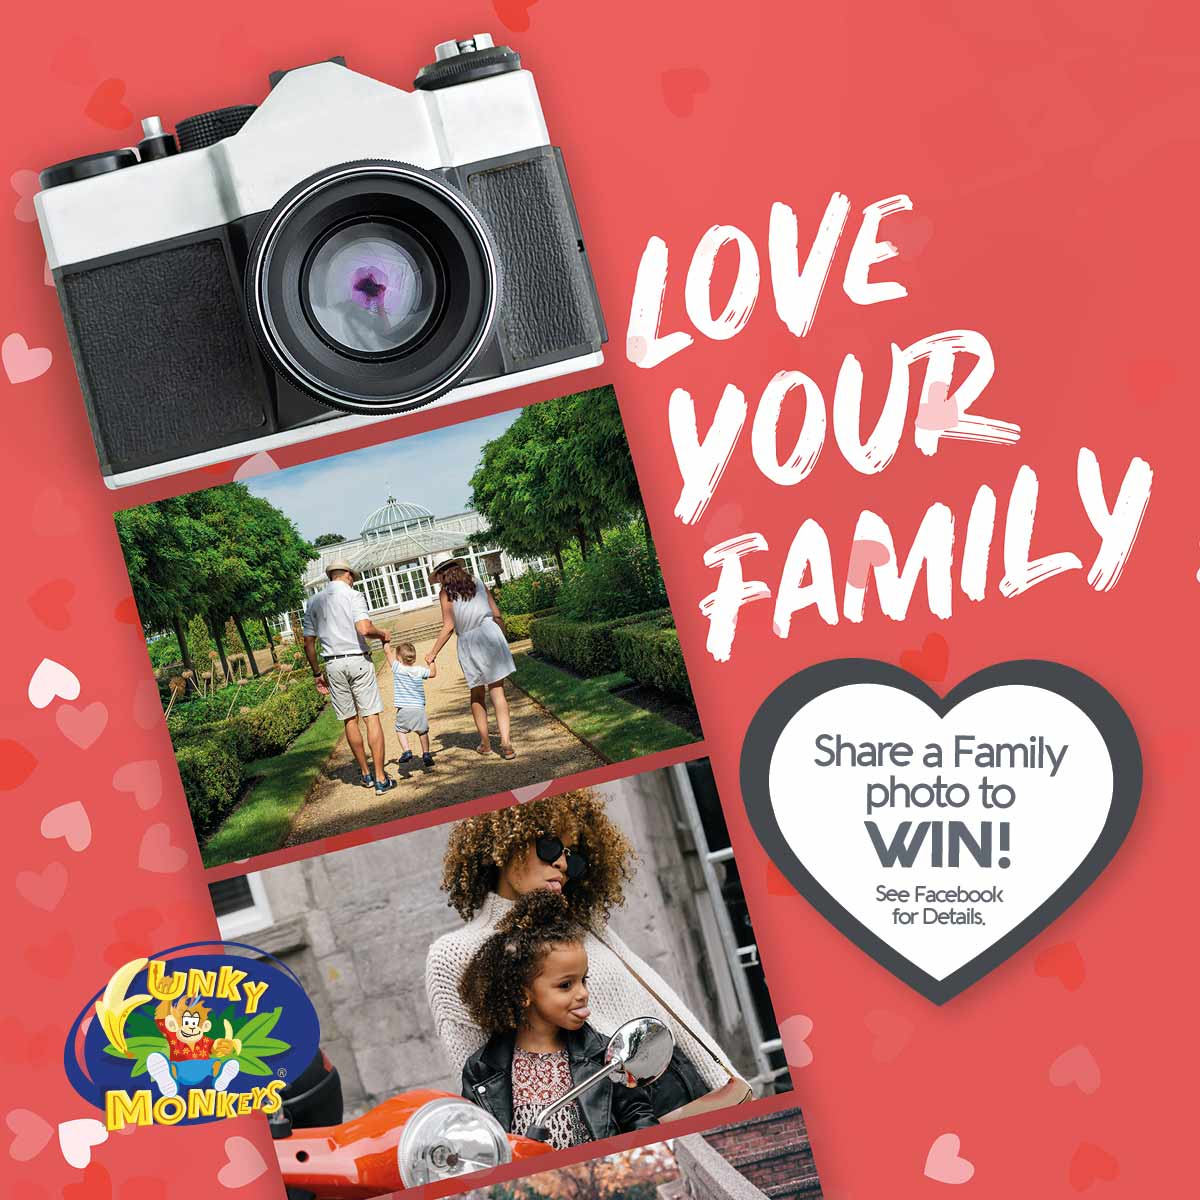 Love Your Family Competition